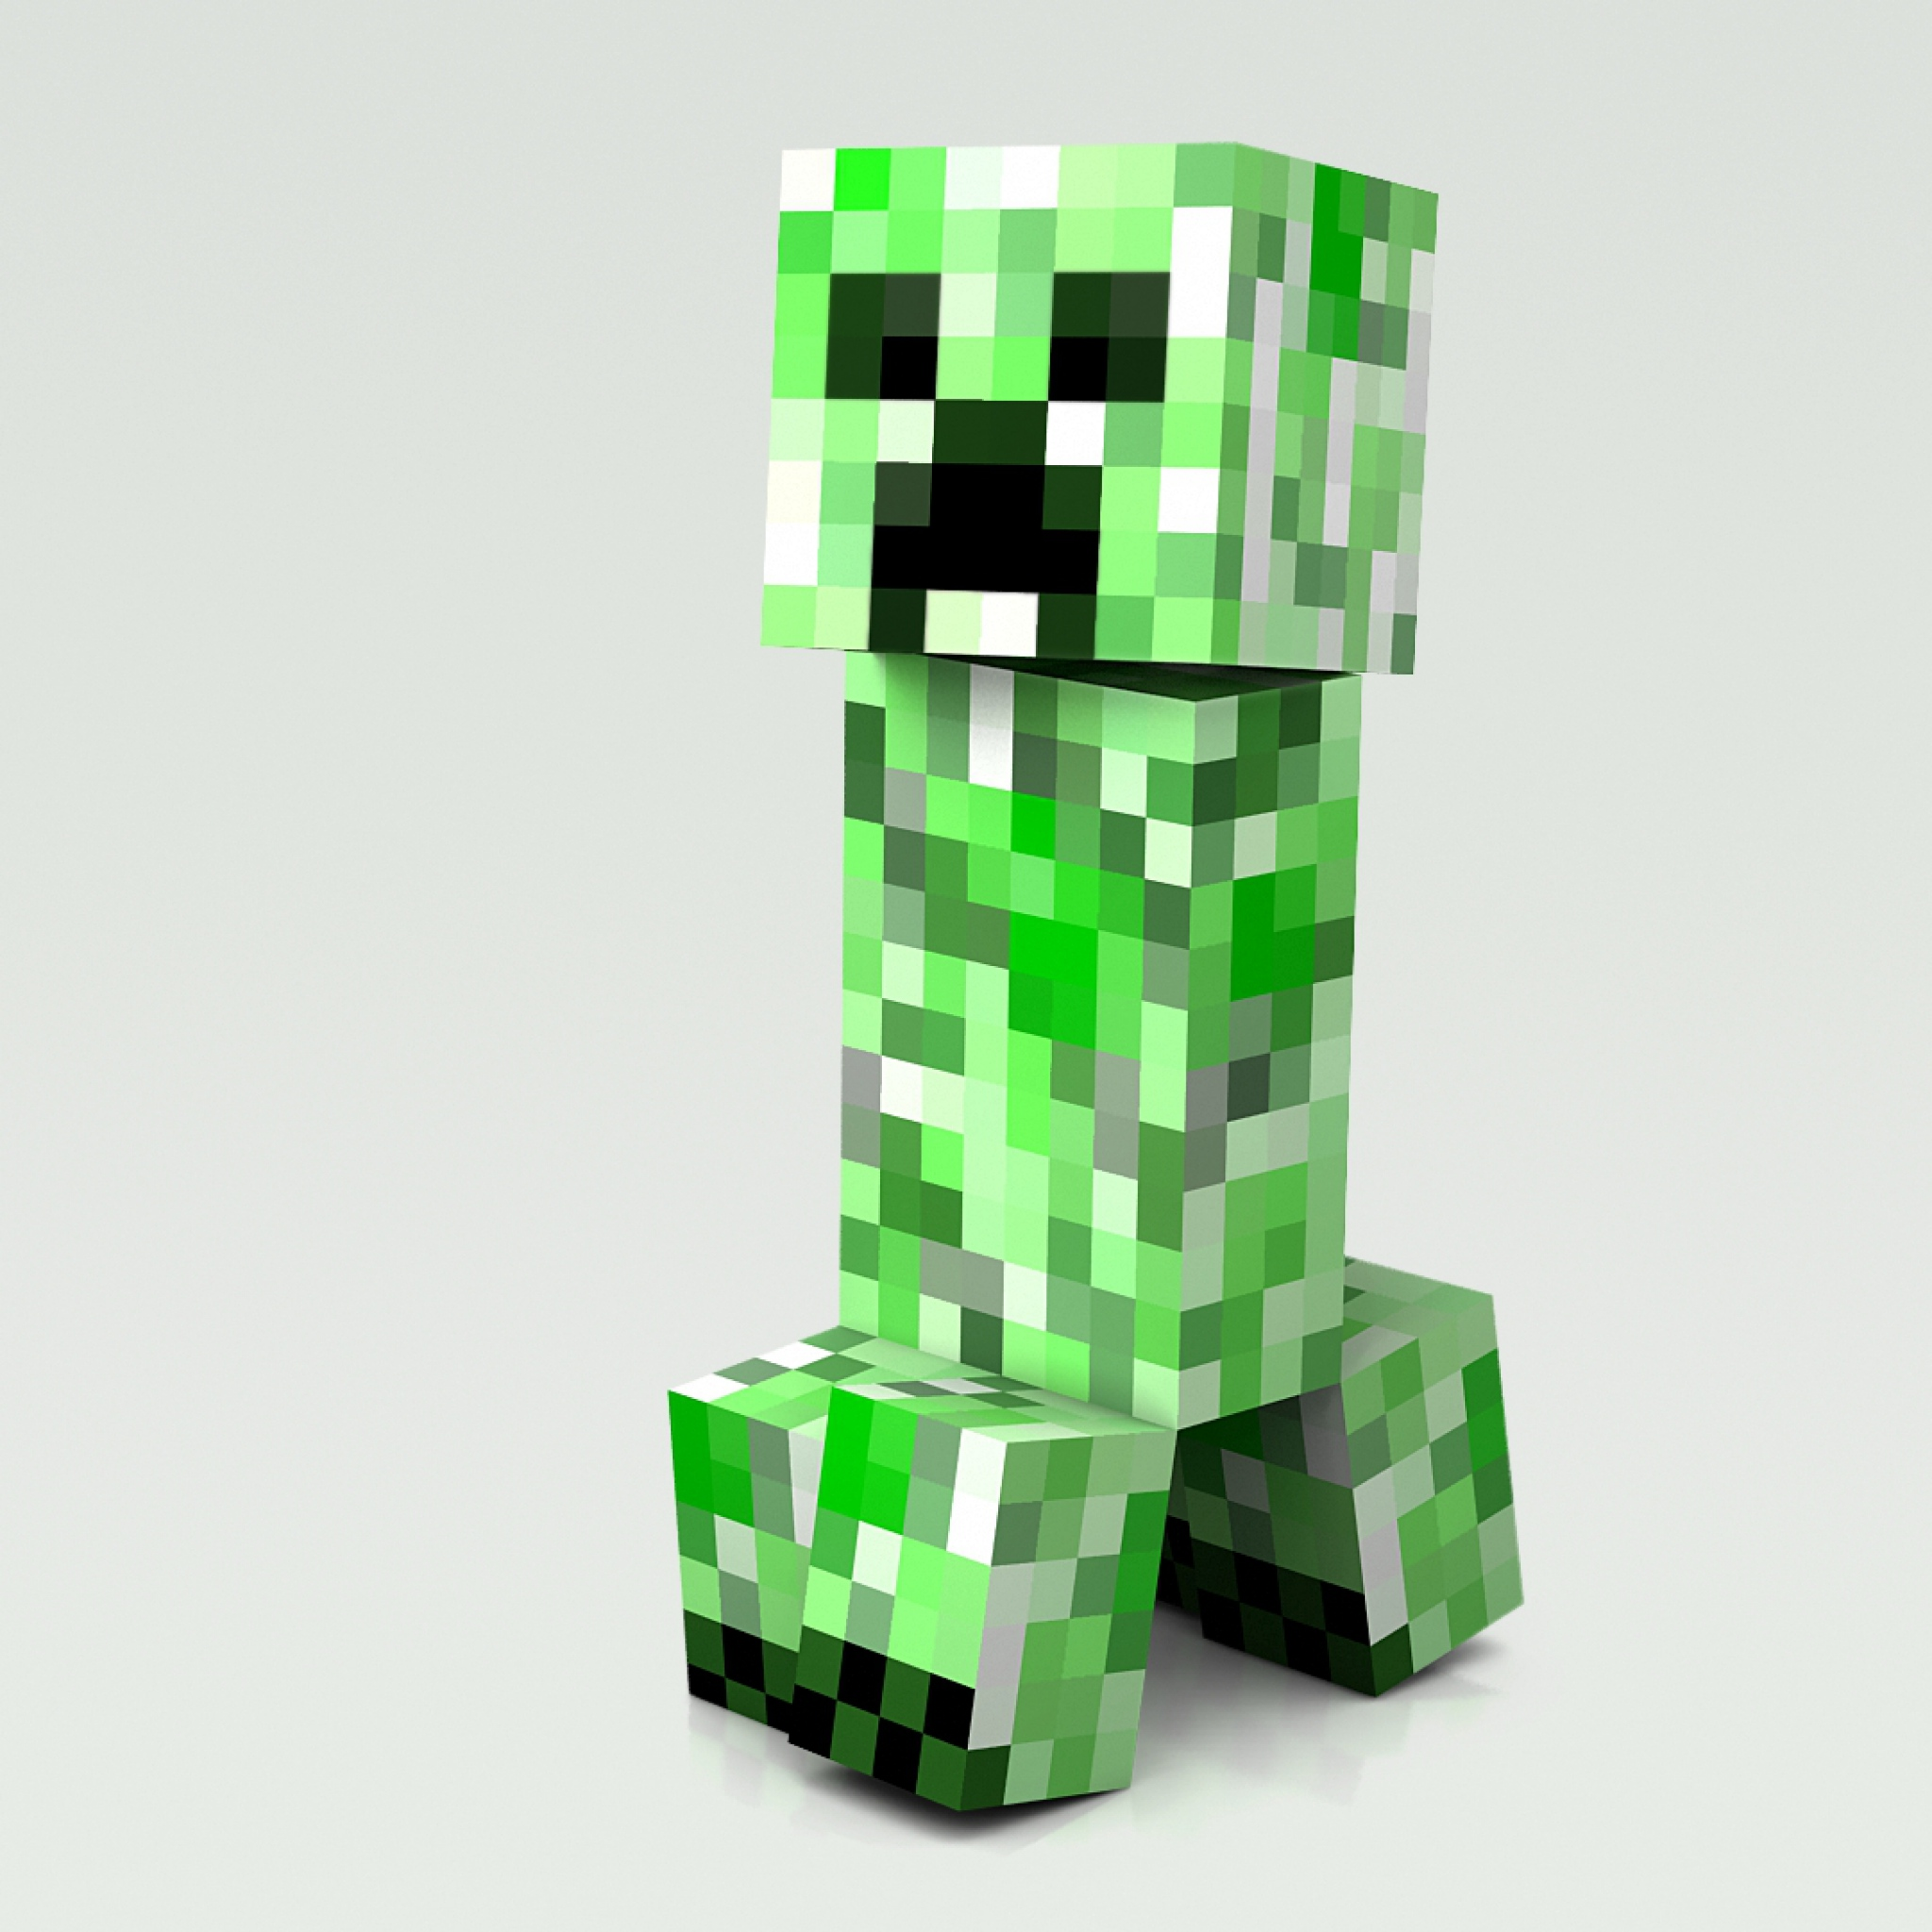 2048x2048 Minecraft Cubes People Man Wallpaper Background New iPad 2048x2048